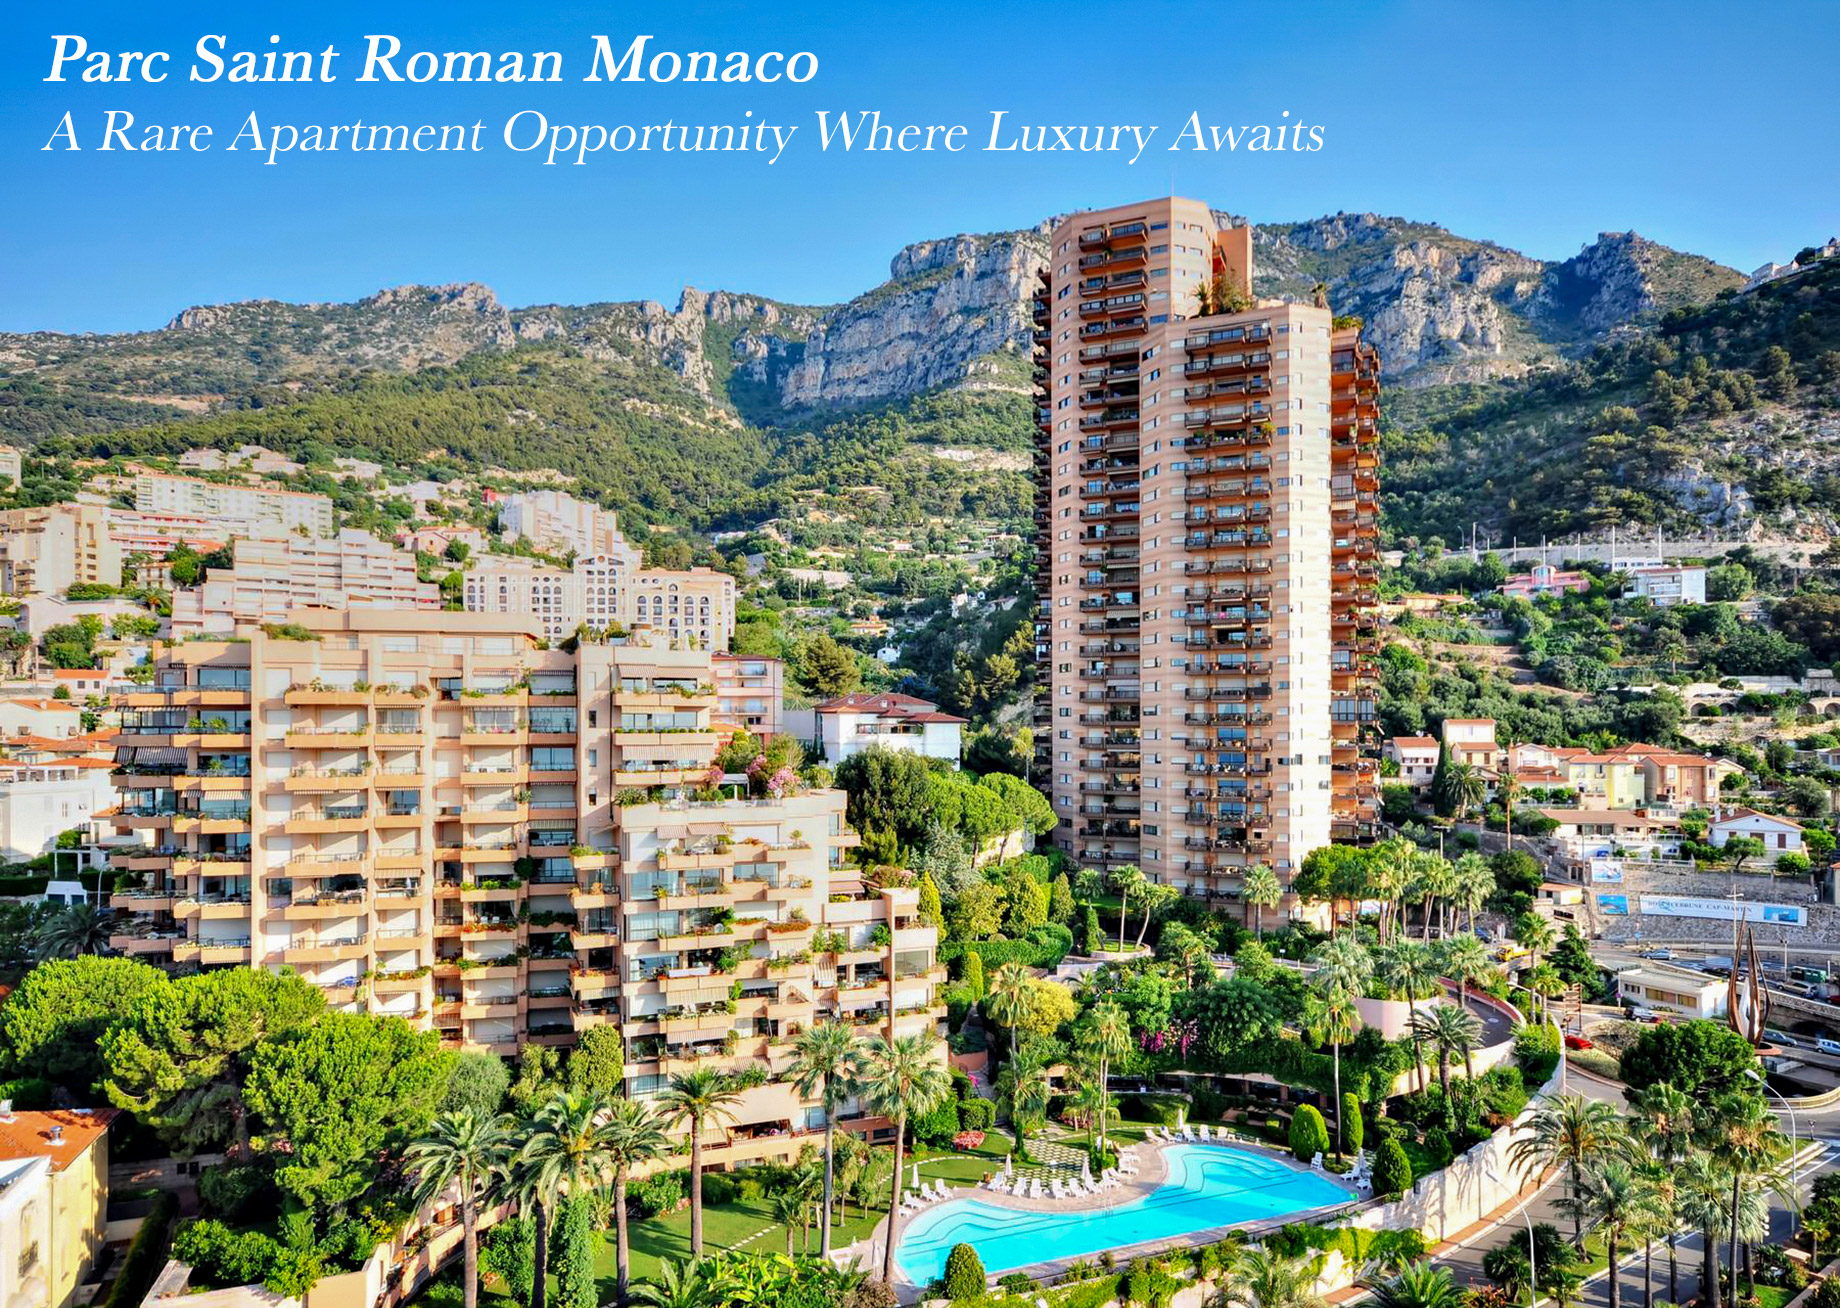 Parc Saint Roman Monaco - A Rare Apartment Opportunity Where Luxury Awaits